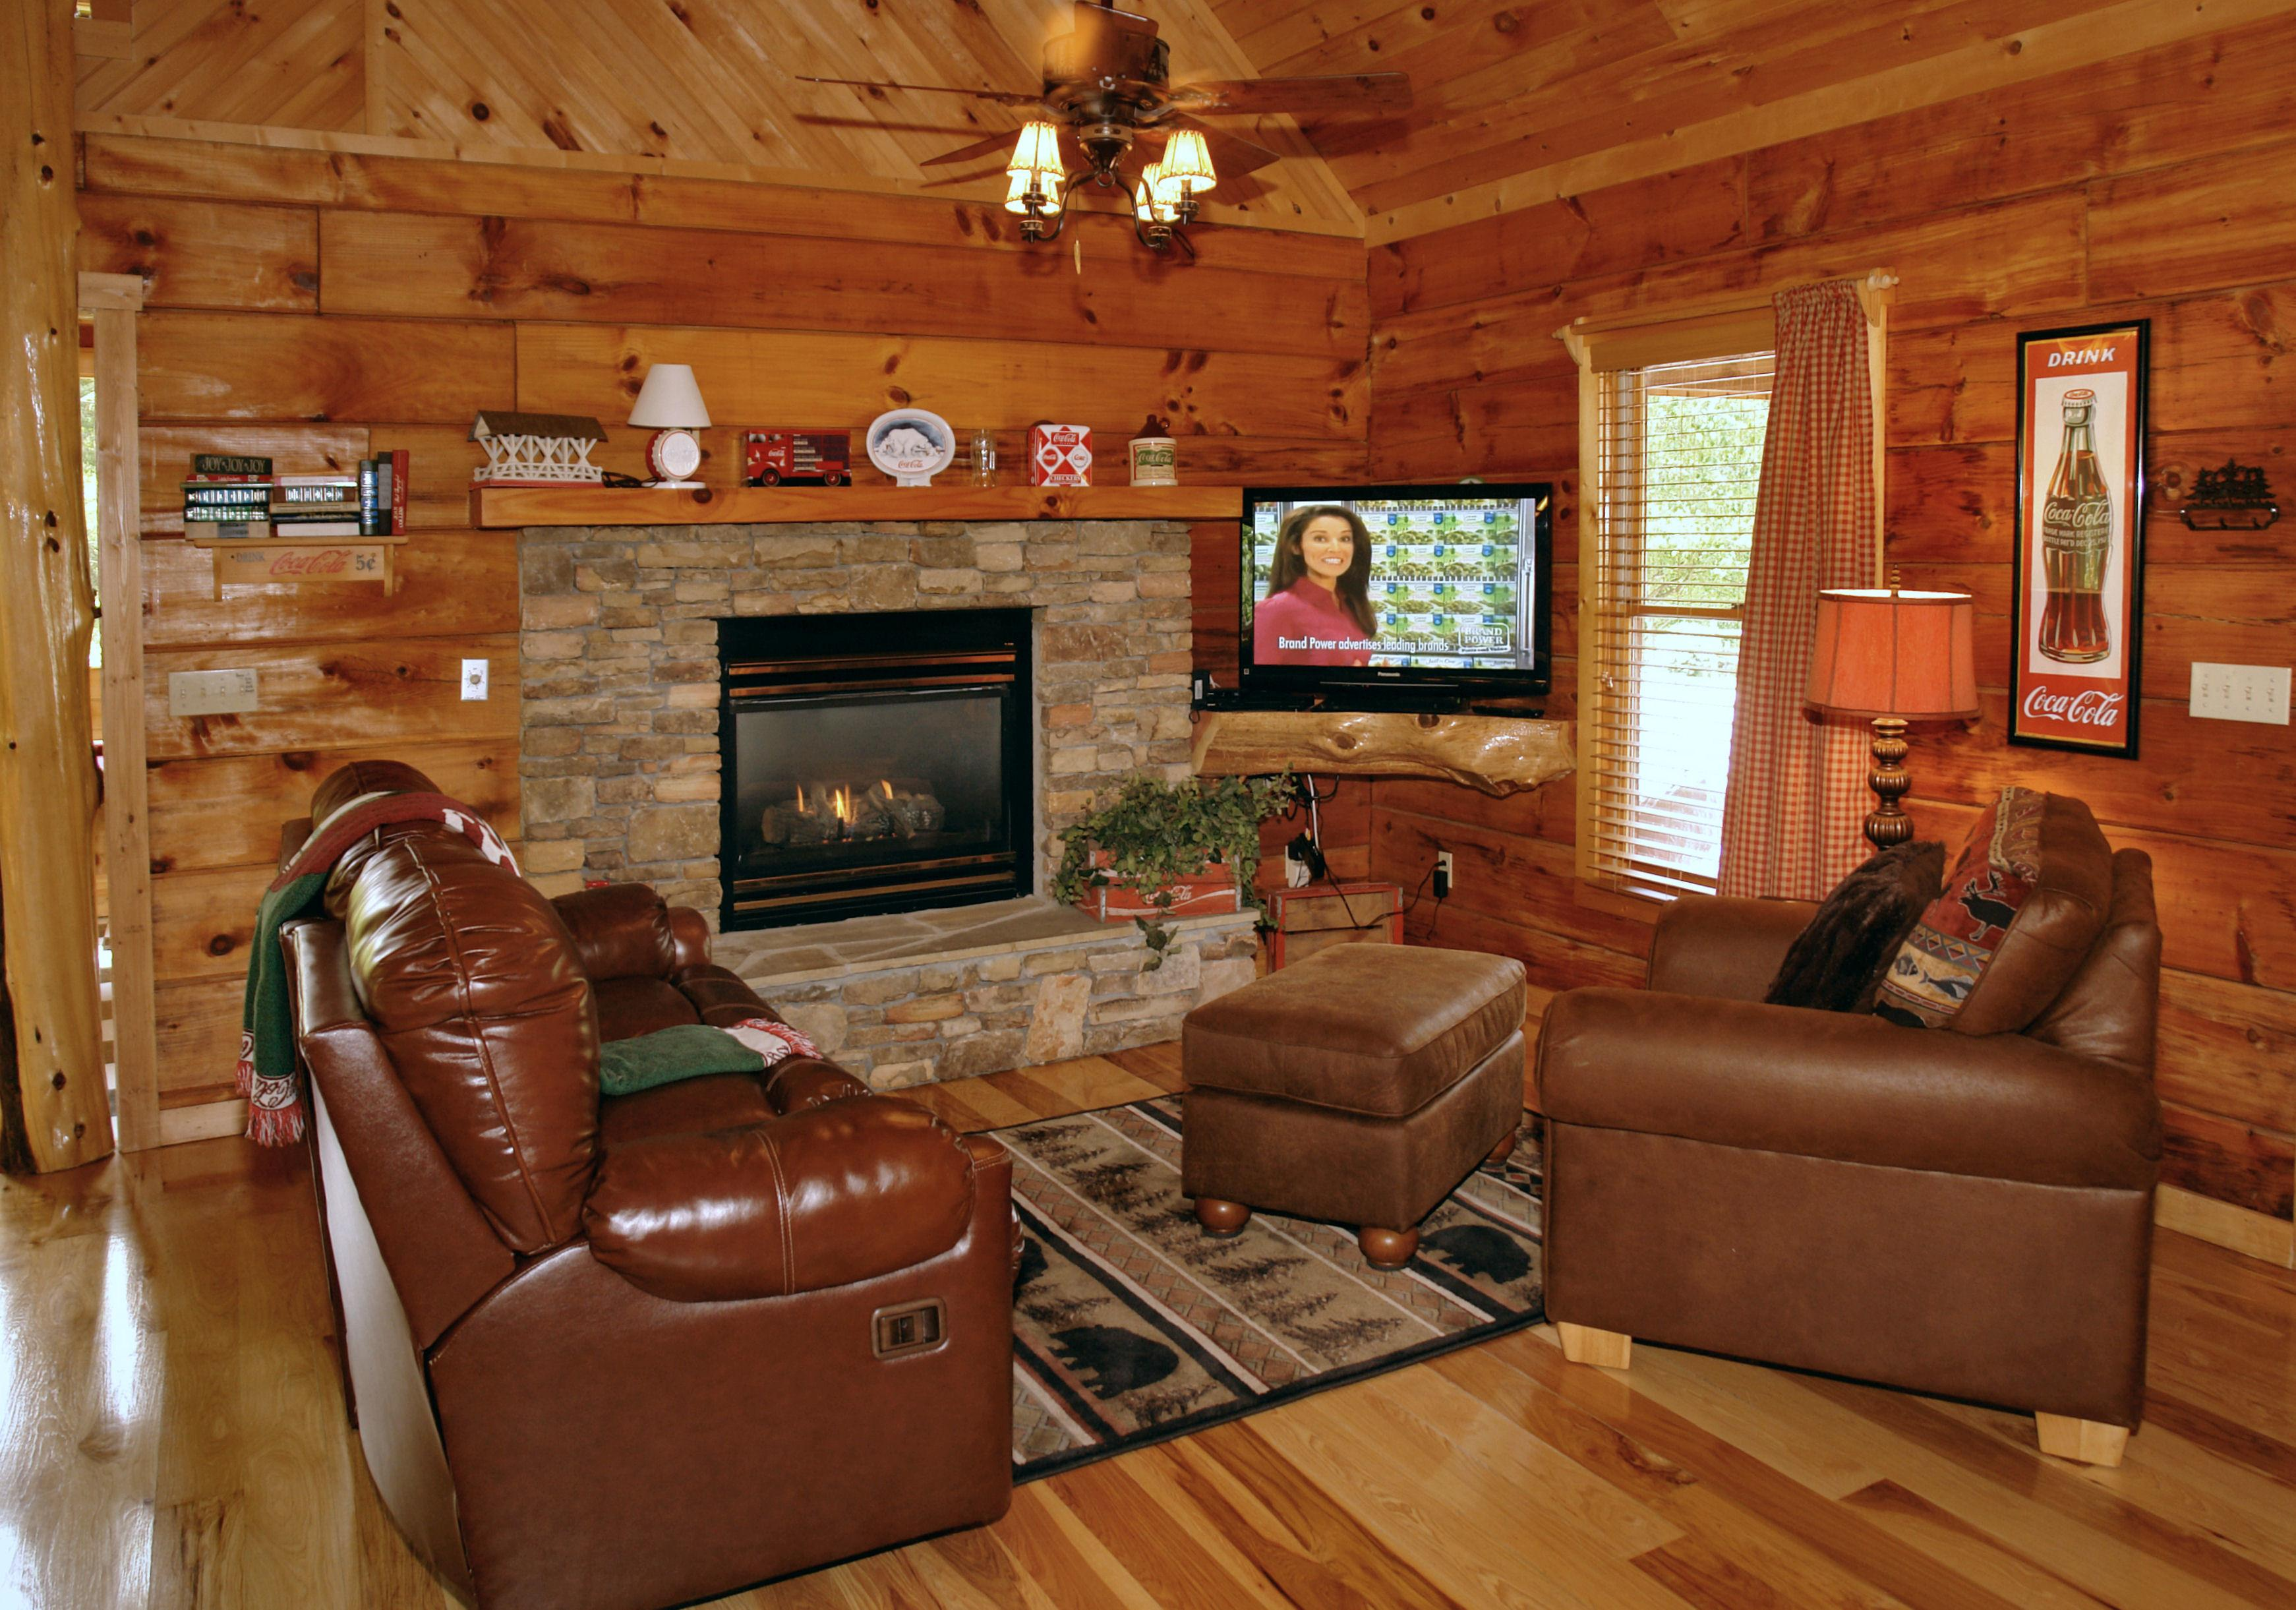 Wondrous Brown Leather Sofa Brick Wall Fireplace Also